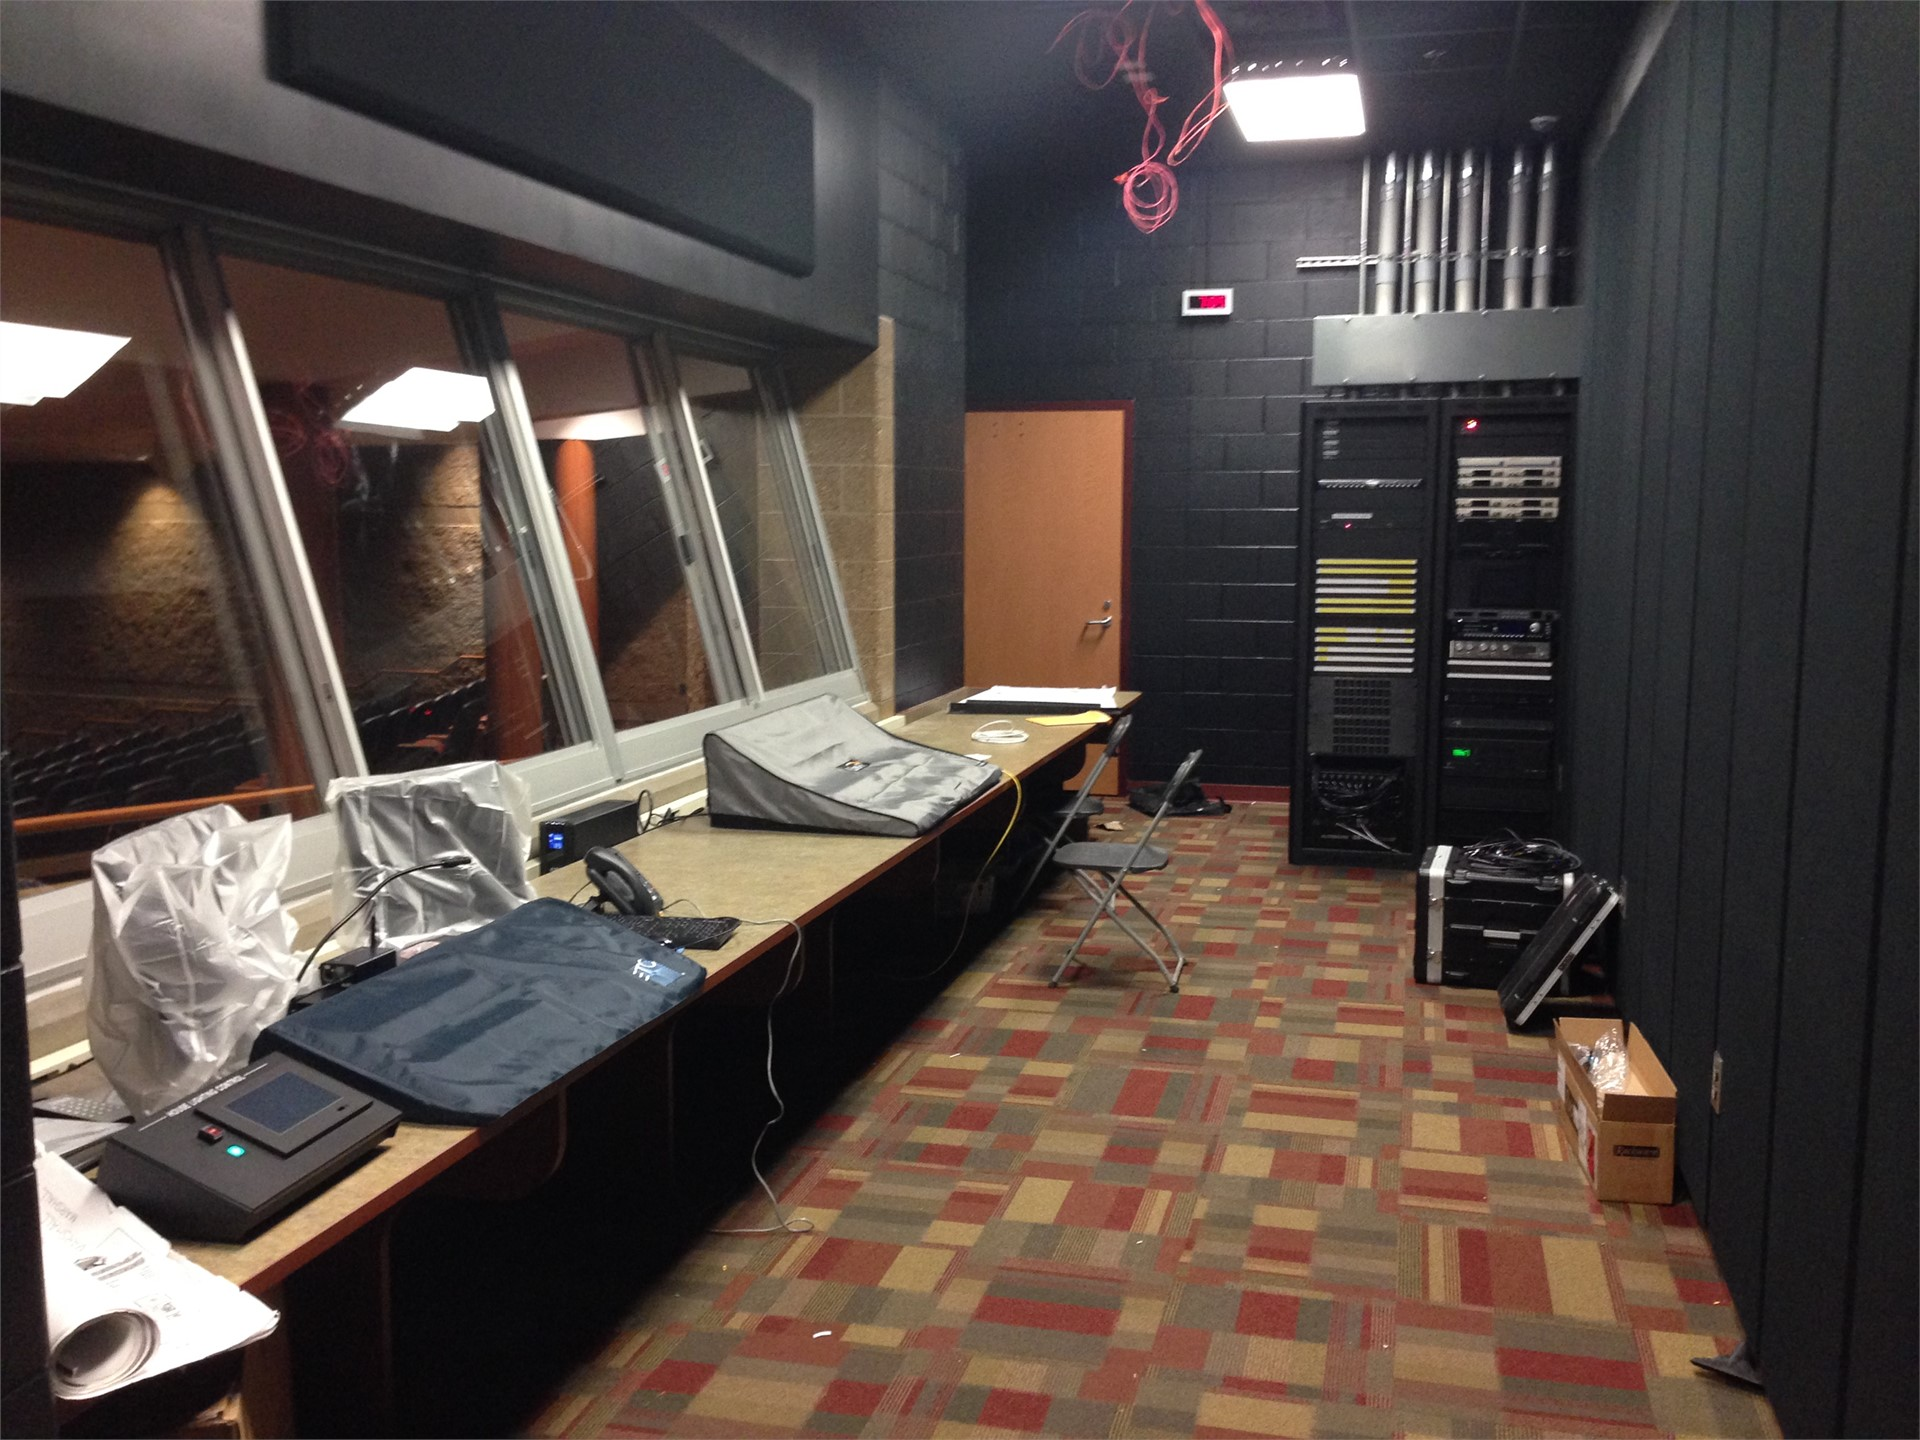 Picture of sound booth in new auditorium